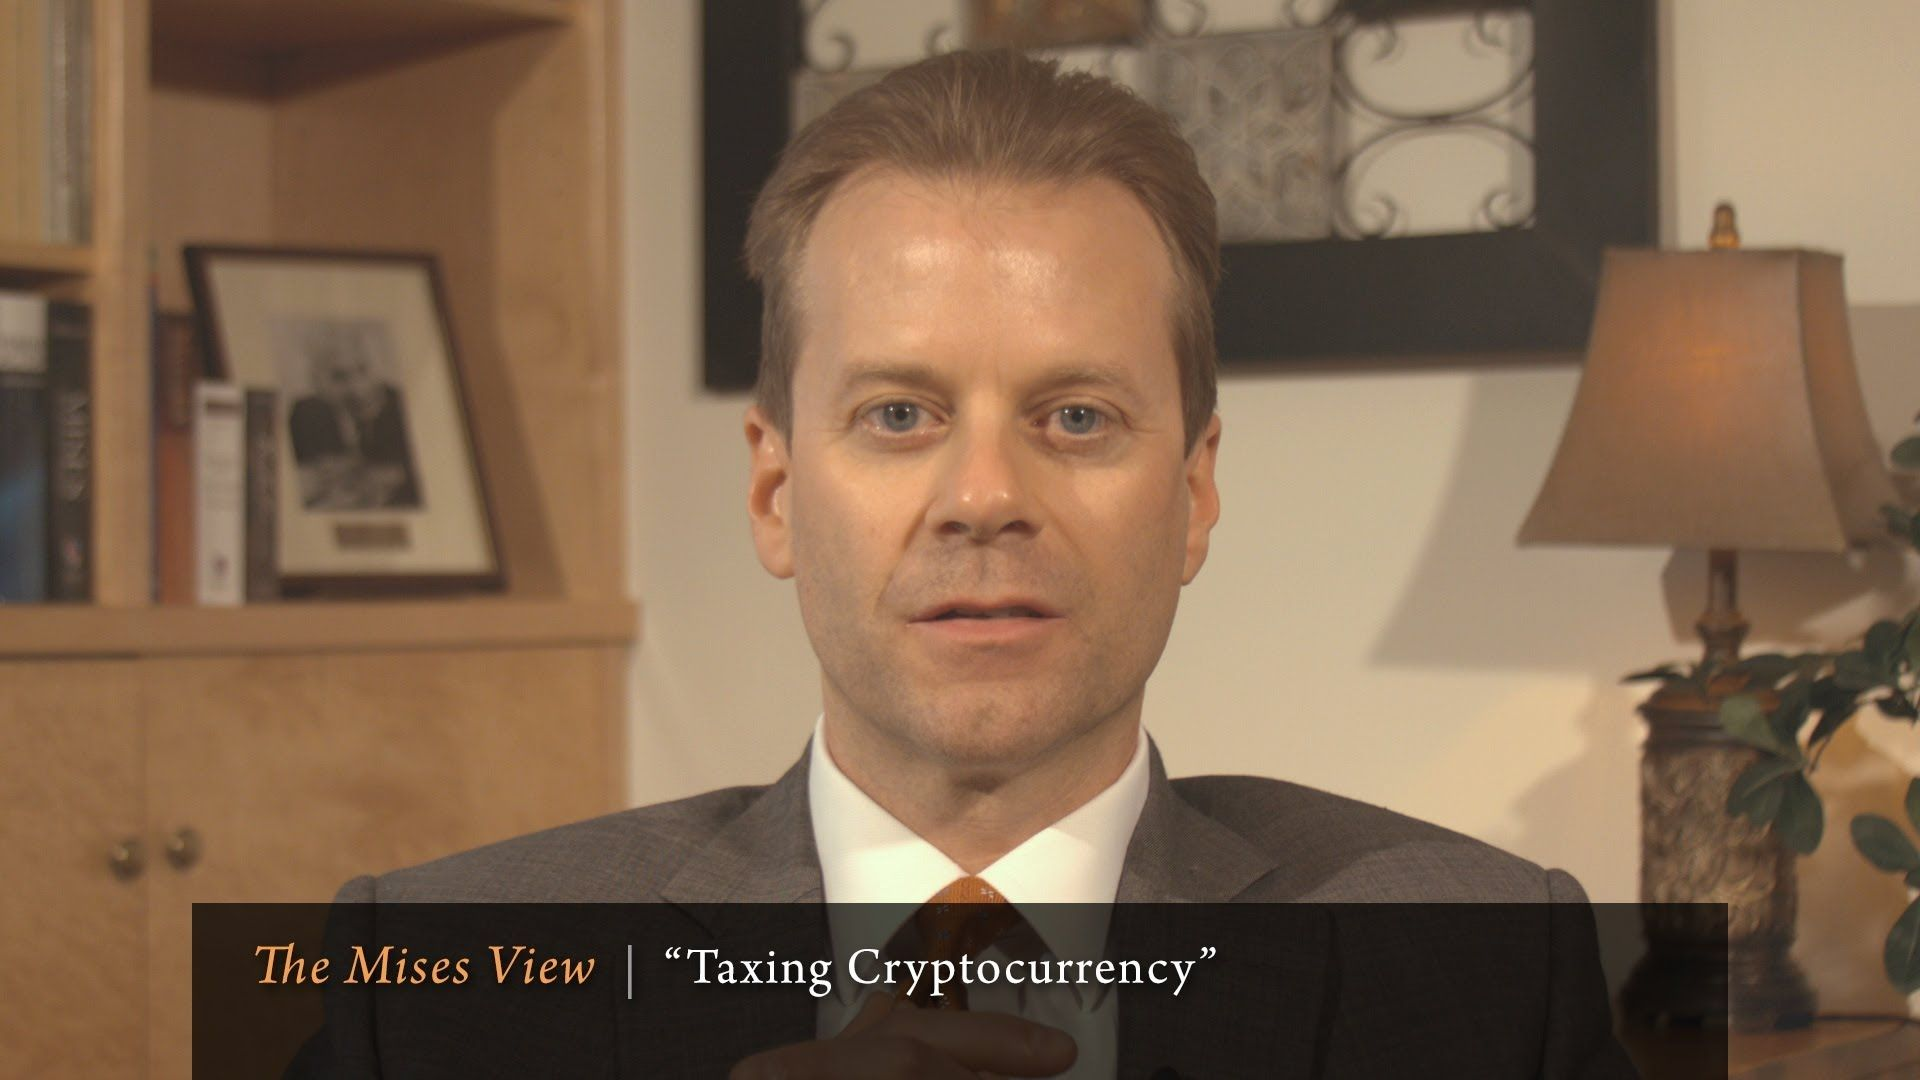 """The Mises View: """"Taxing Cryptocurrency"""" 